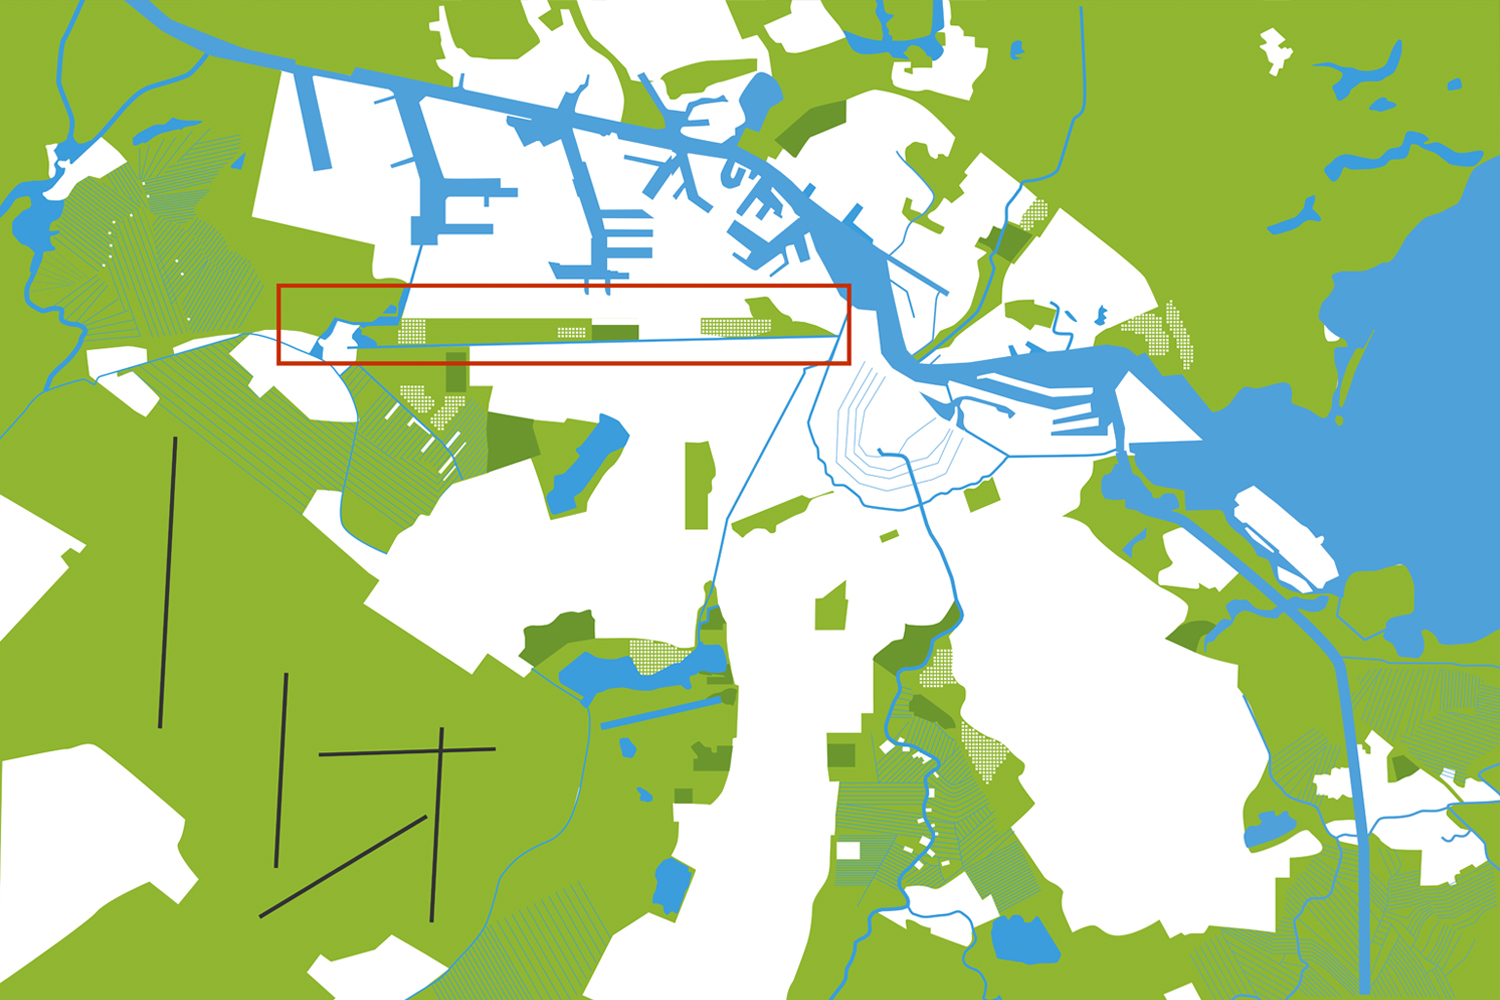 In the ''General Development Plan 1934'', the Brettenzone was included in the main green structure in order to bring air and landscape into the city of Amsterdam.